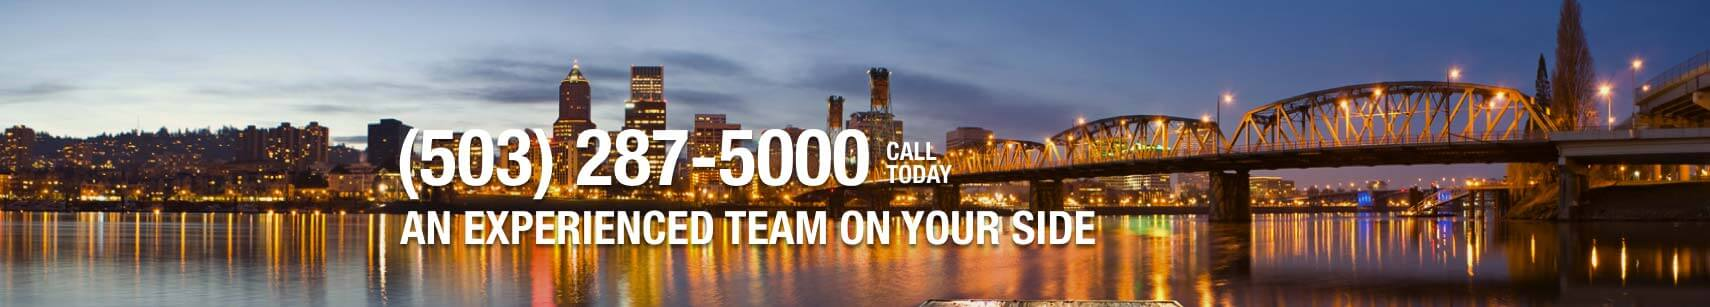 (503)287-5000 CALL TODAY - AN EXPERIENCED TEAM ON YOUR SIDE